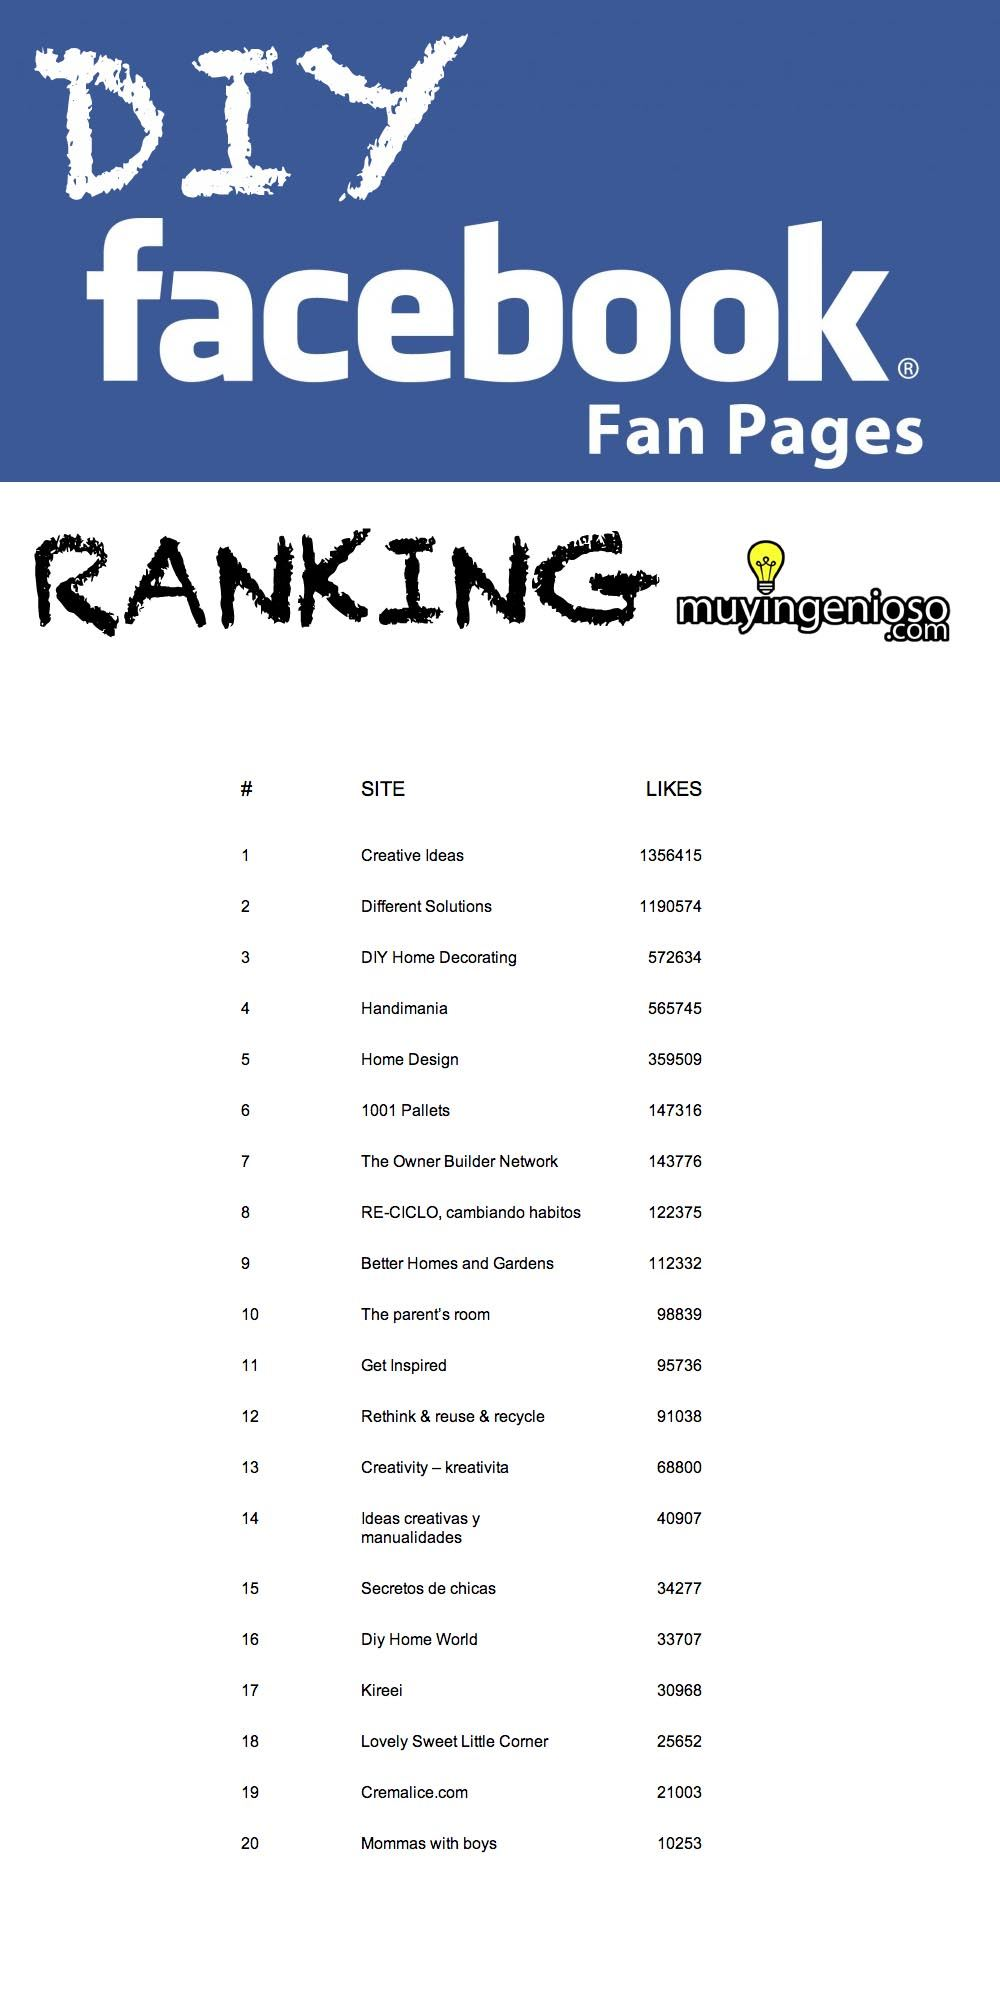 Ranking_DIY_muyingenioso_largo_082013